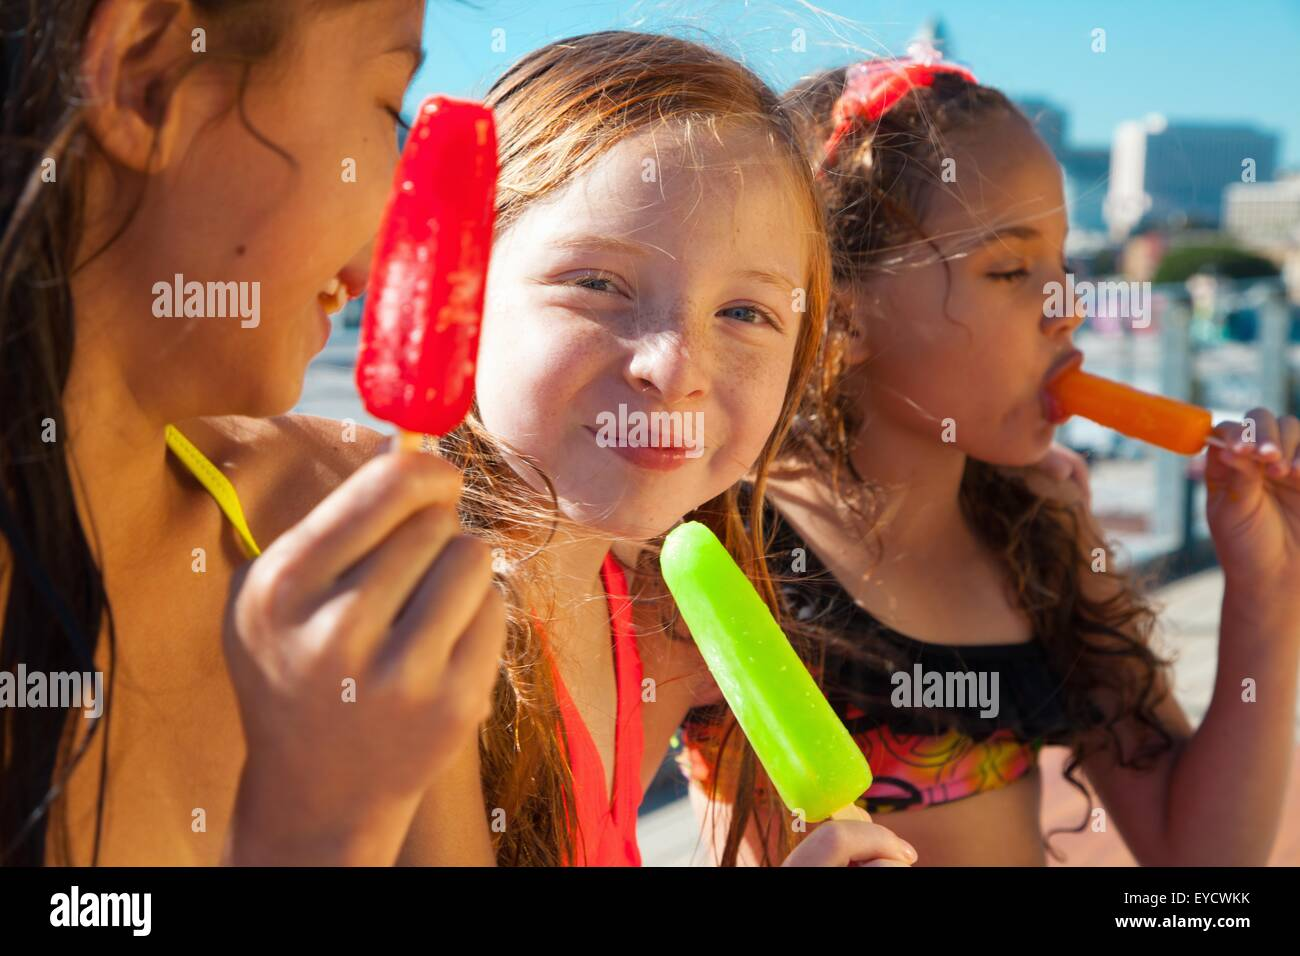 Girls eating ice lollies Stock Photo